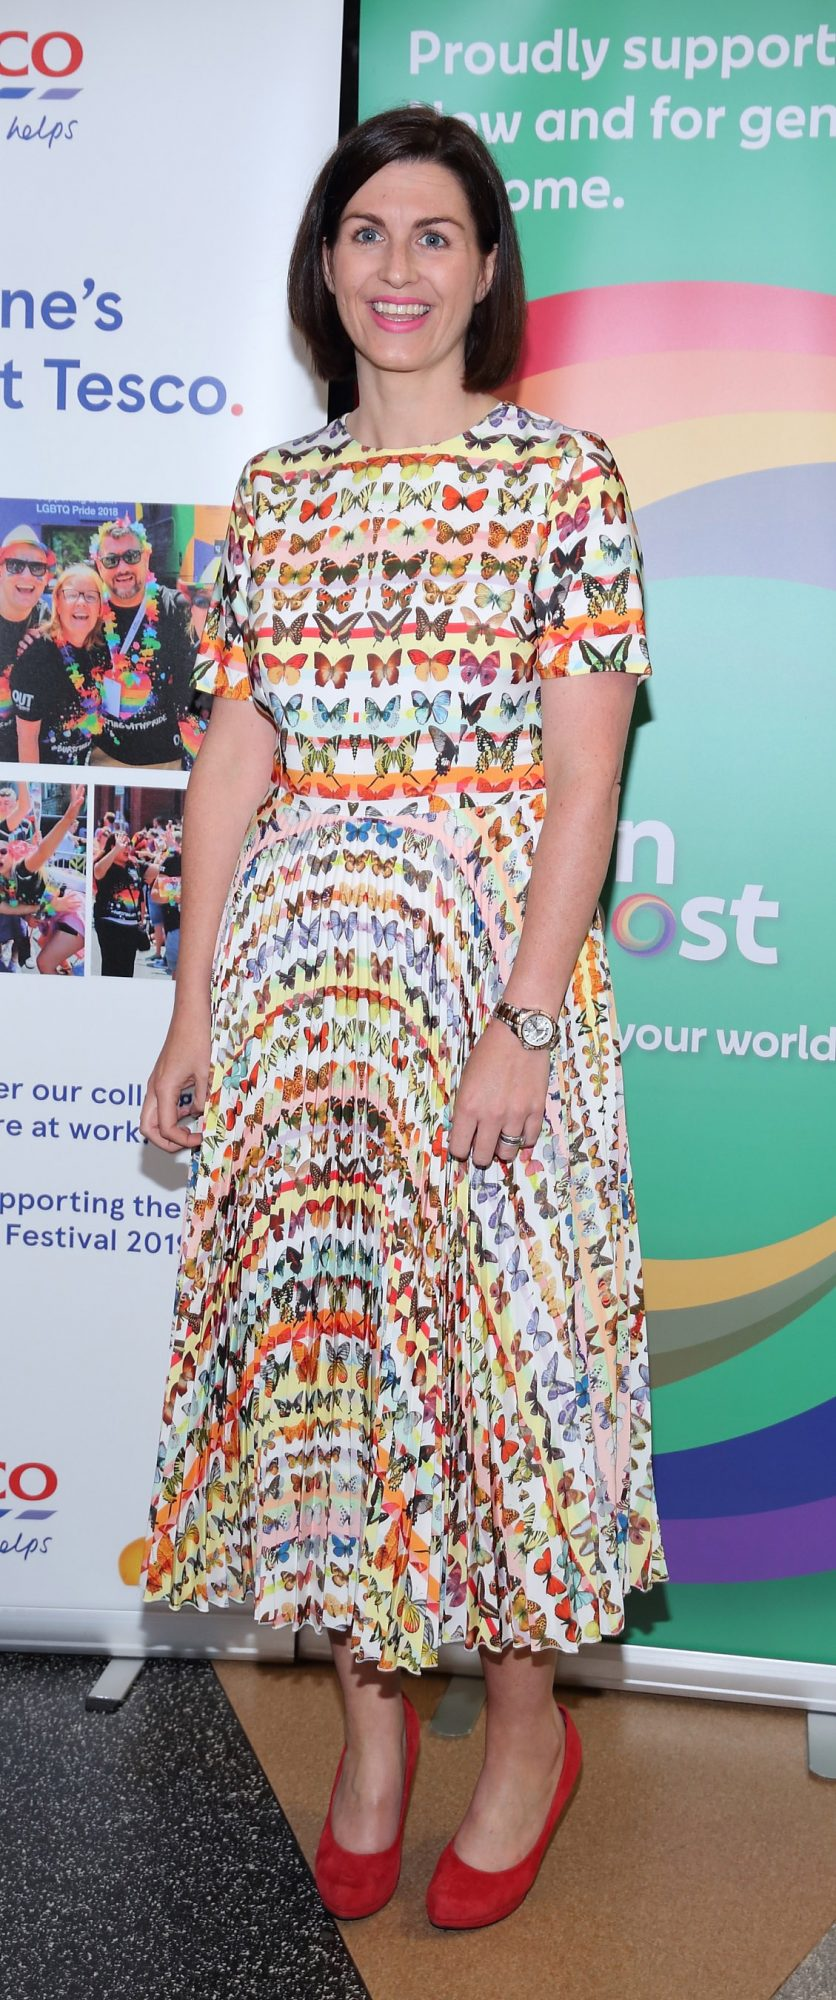 Aoife Beirne pictured at the launch of the Dublin LGBTQ+ Pride Festival 2019 in partnership with platinum sponsor Tesco at the GPO, Dublin. Picture: Brian McEvoy Photography